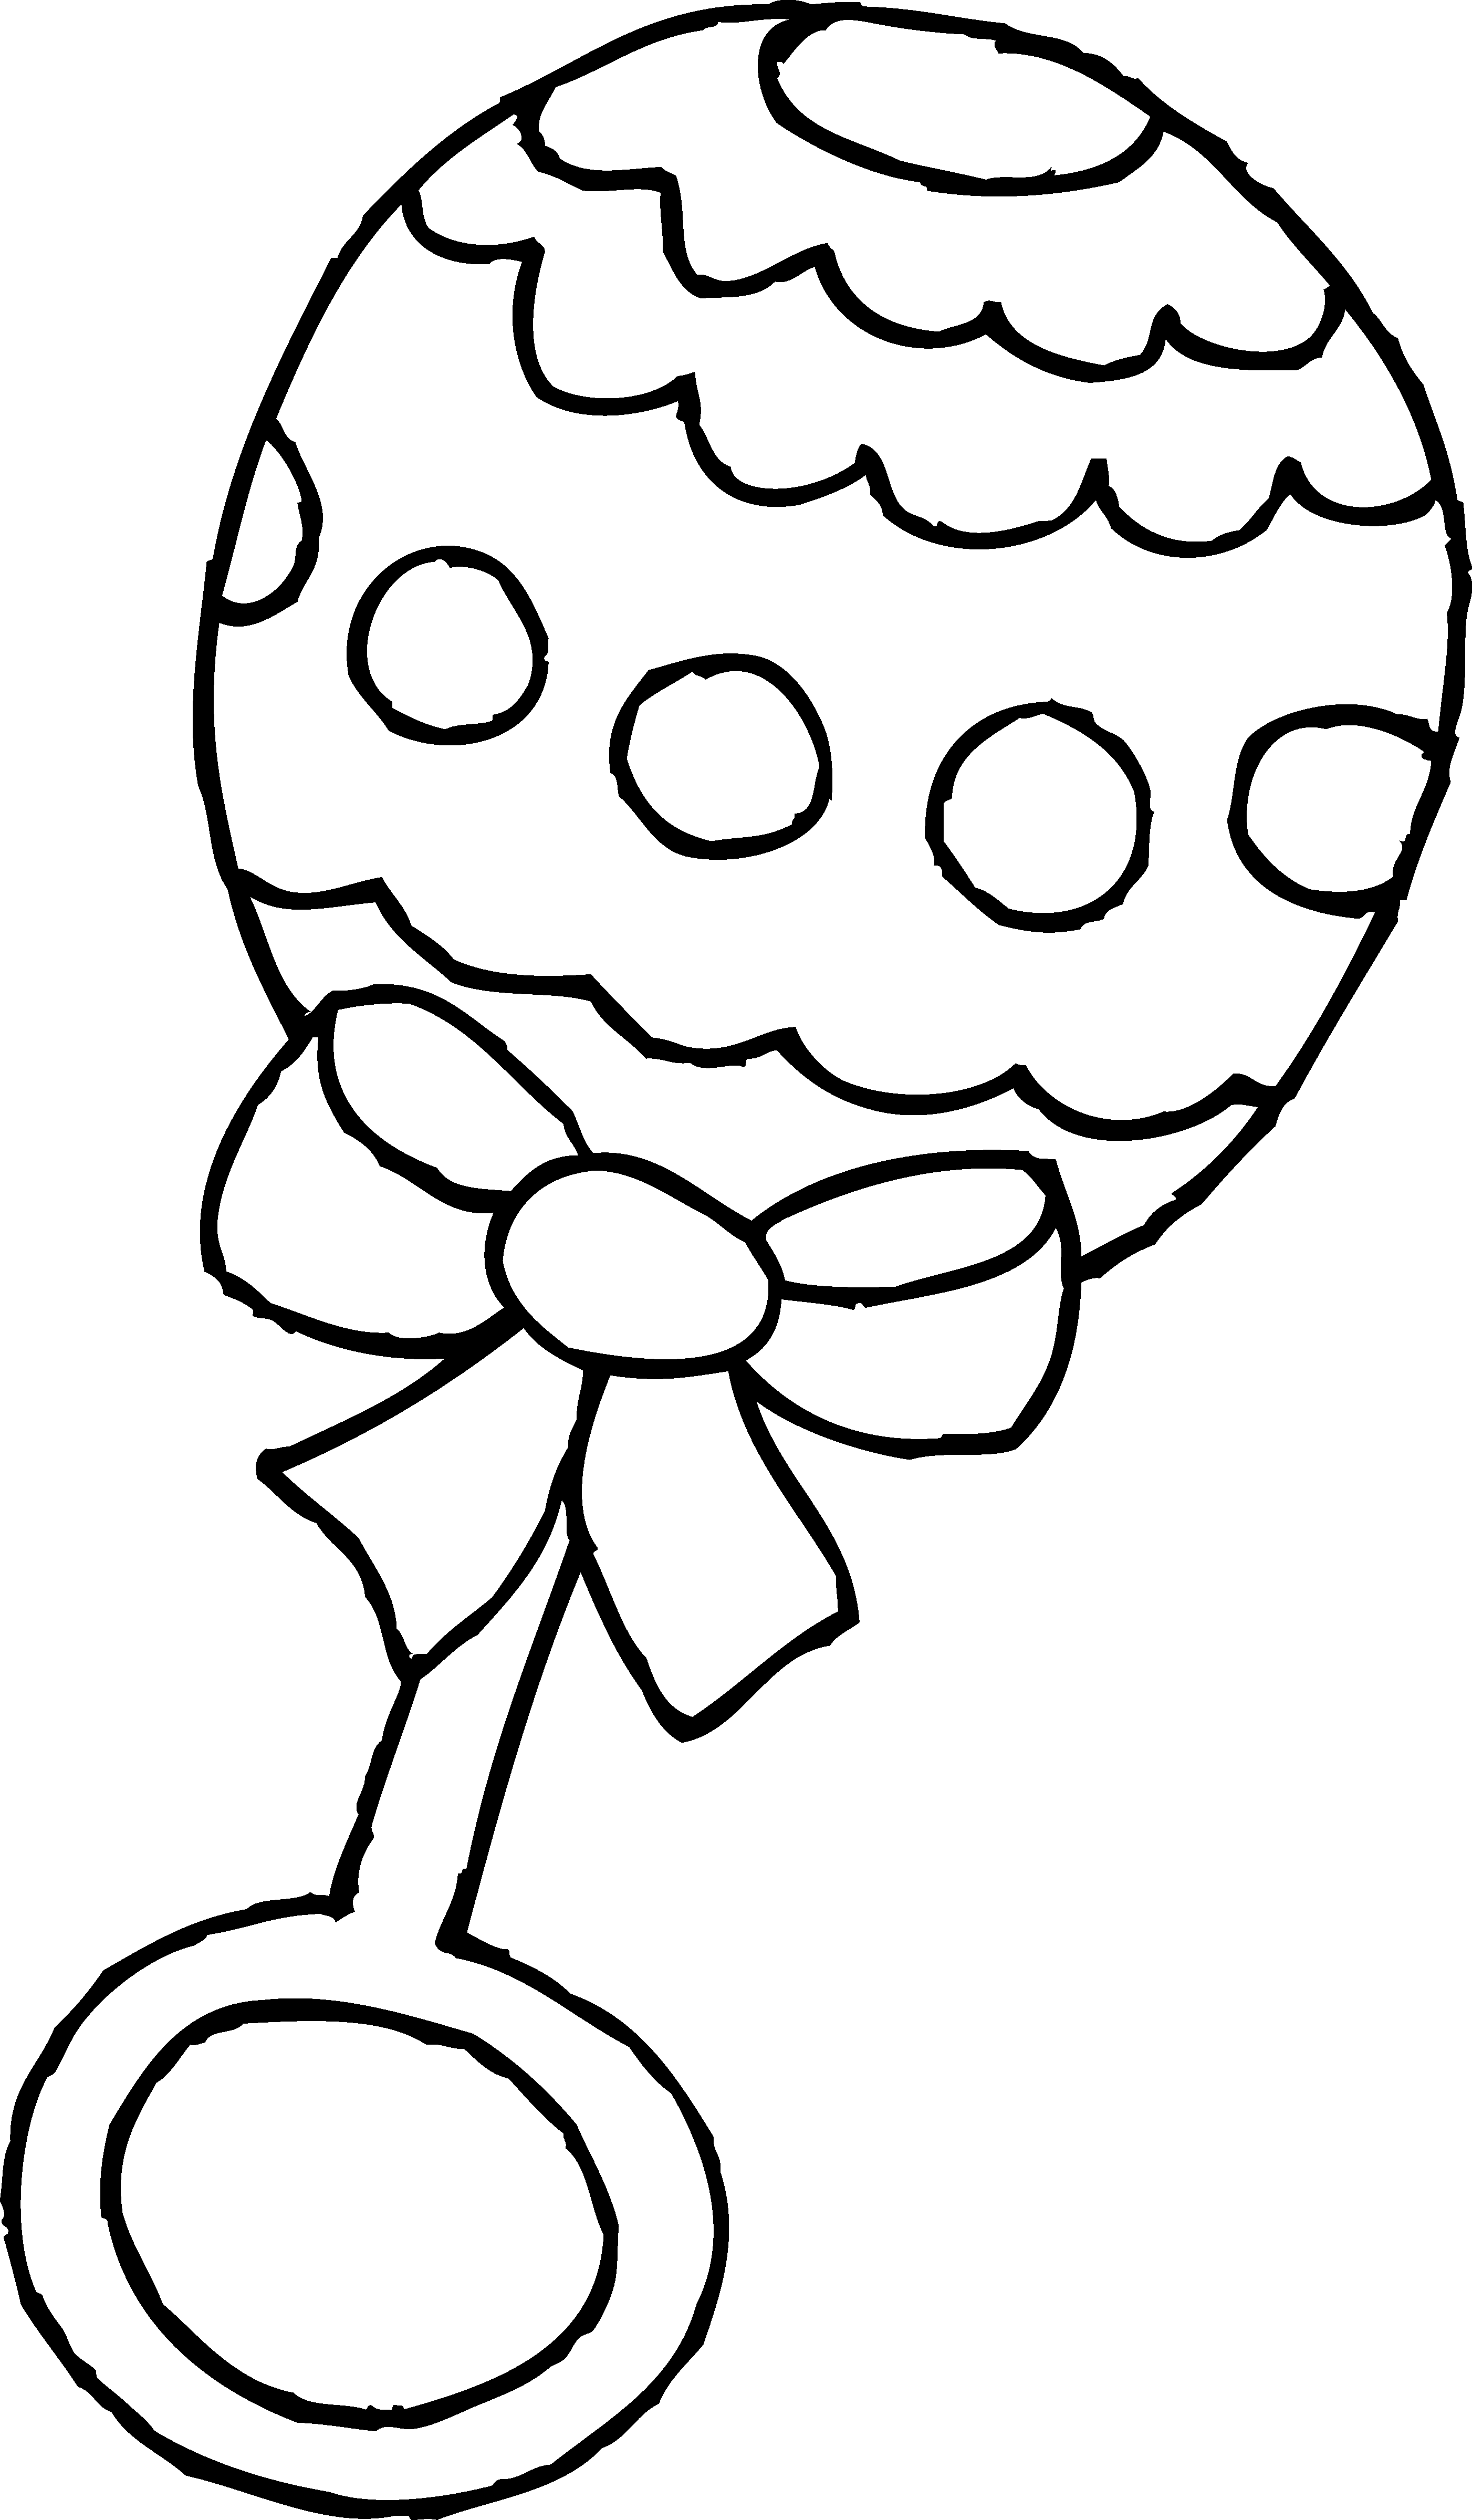 Baby Rattle Clip Art Black And White